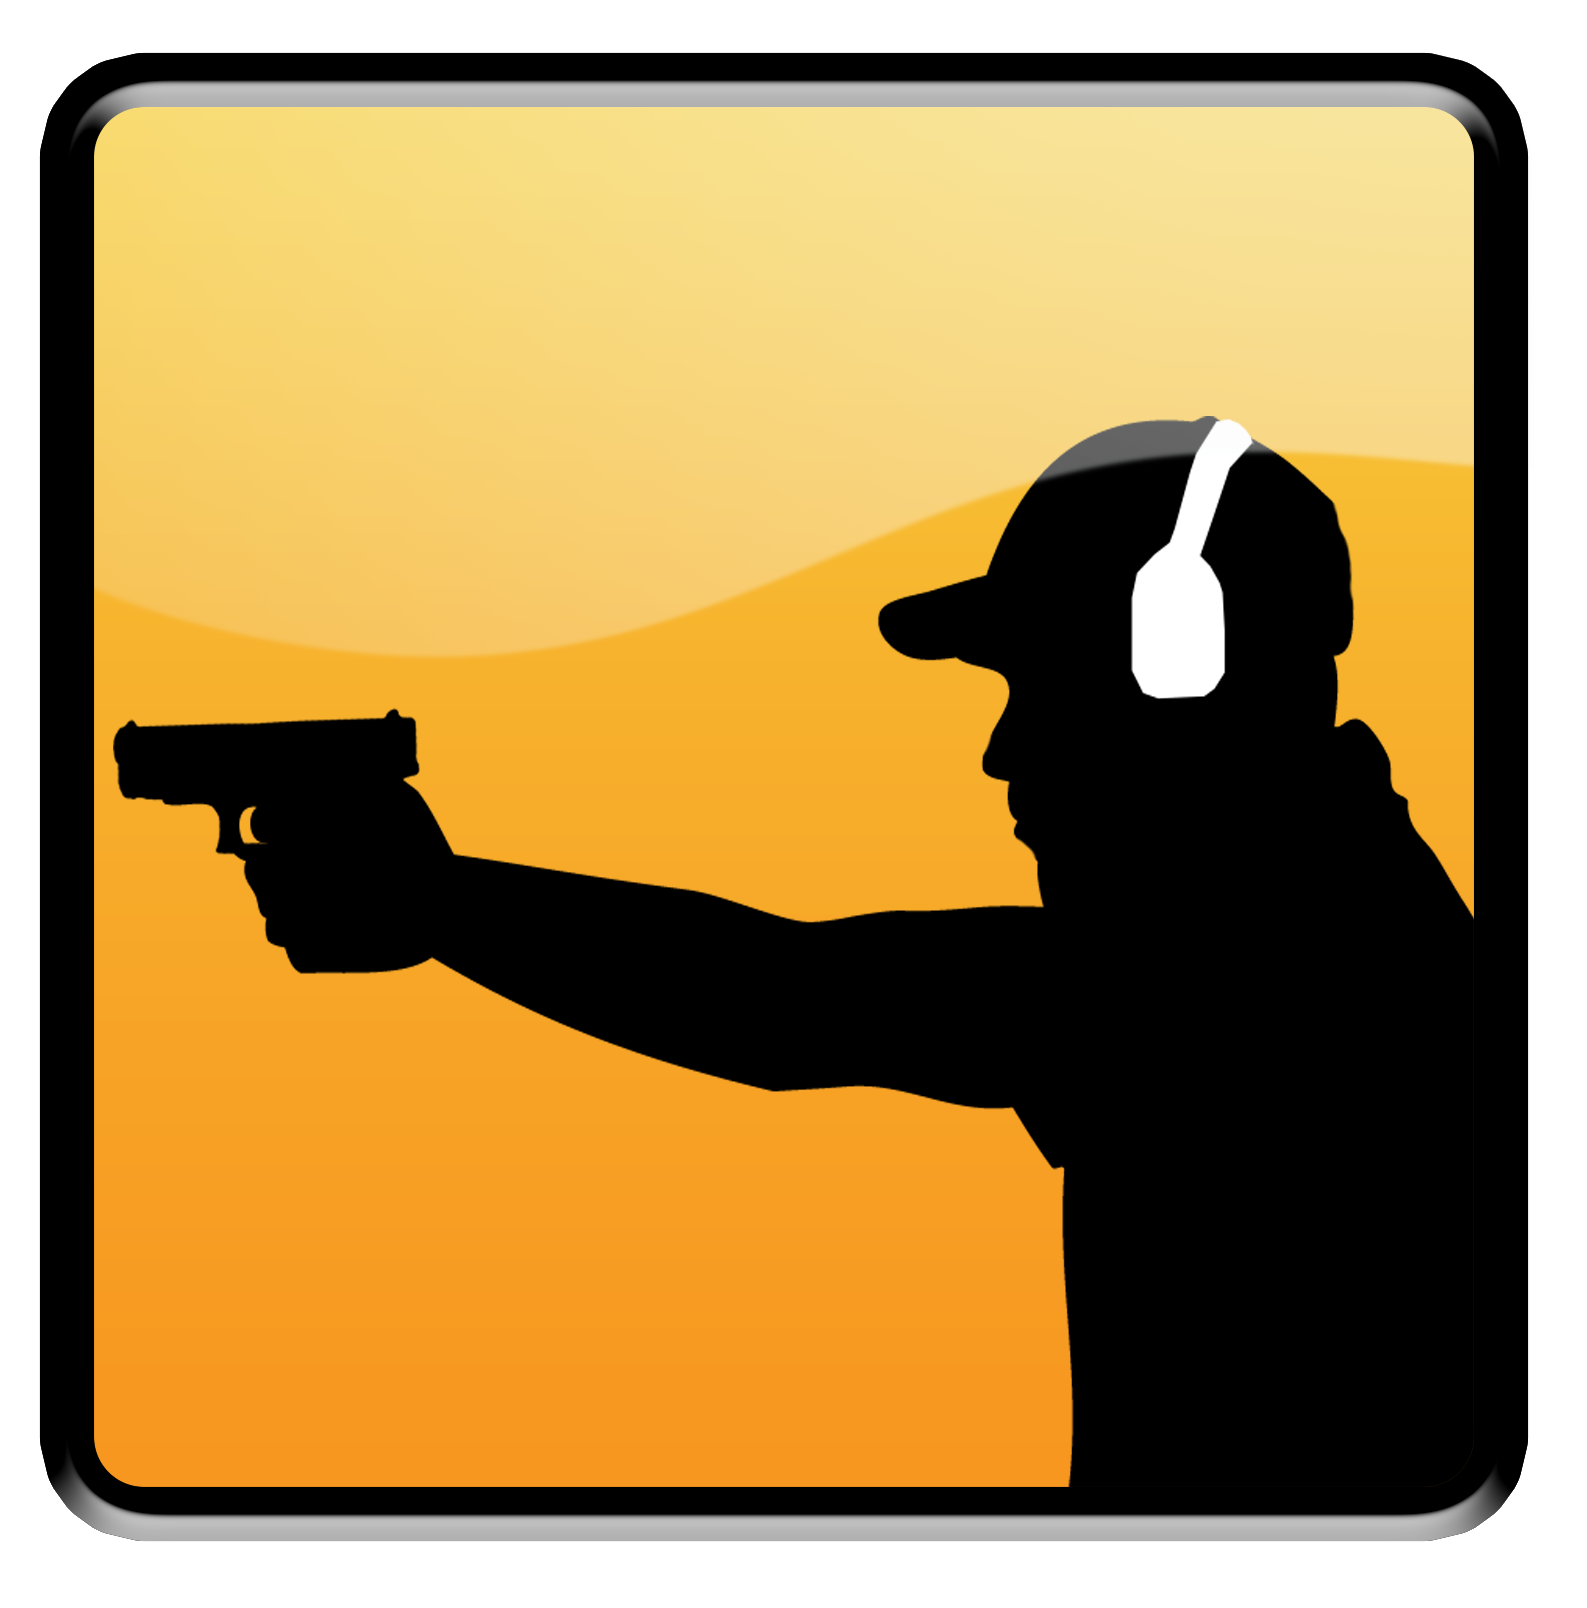 Firearms Services